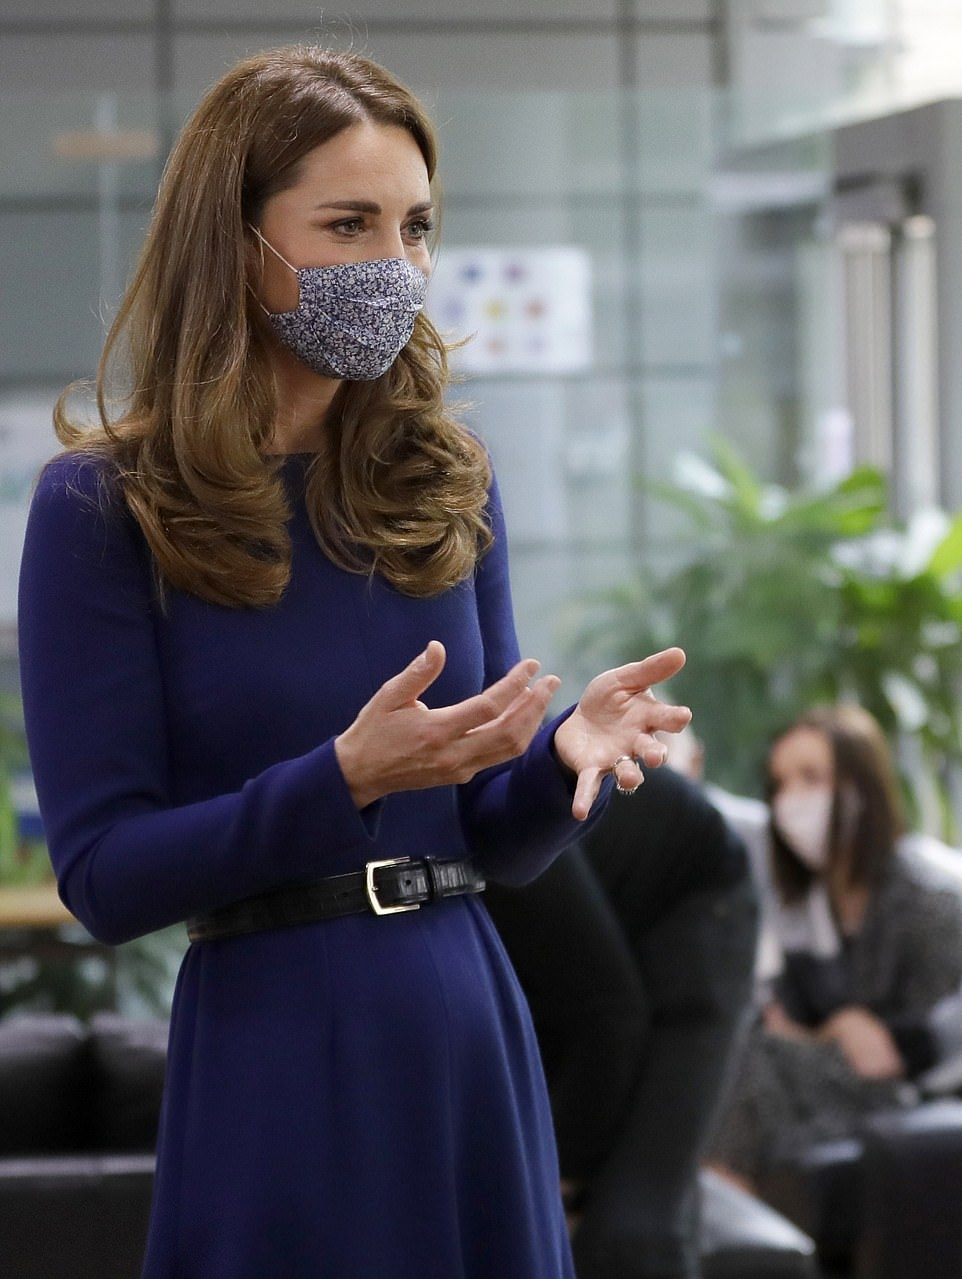 Kate Middleton donning a flare Royal blue dress with full sleeves, a crew neck and cinched waist